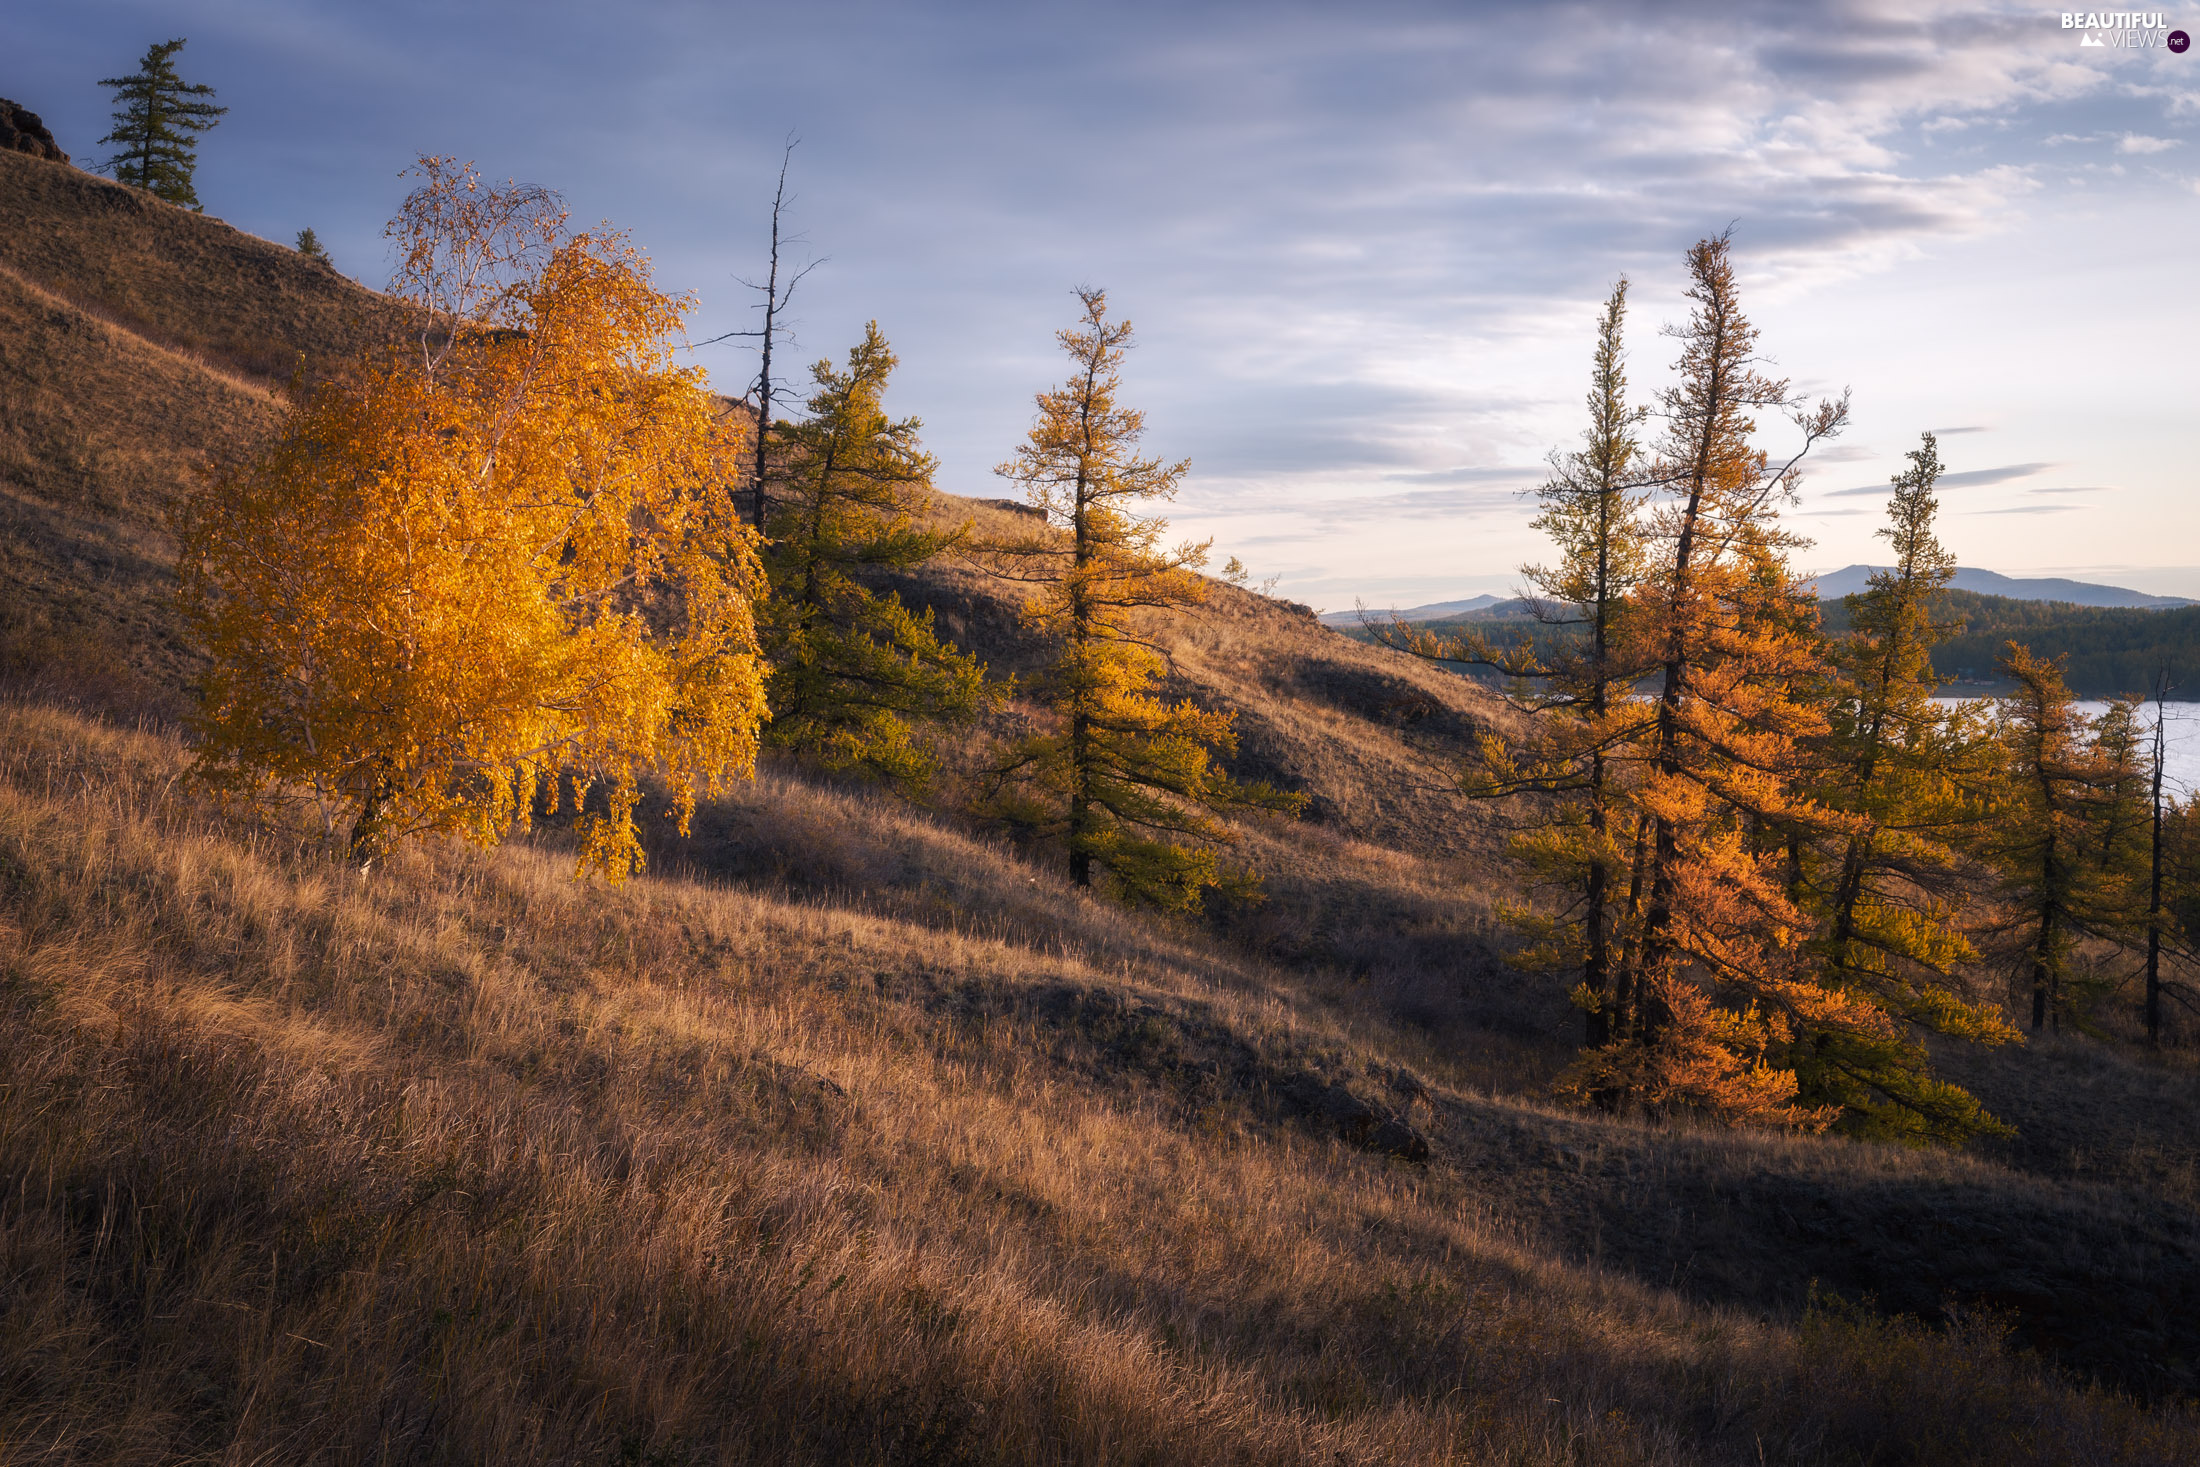 The Hills, trees, lake, viewes, autumn, grass, Mountains